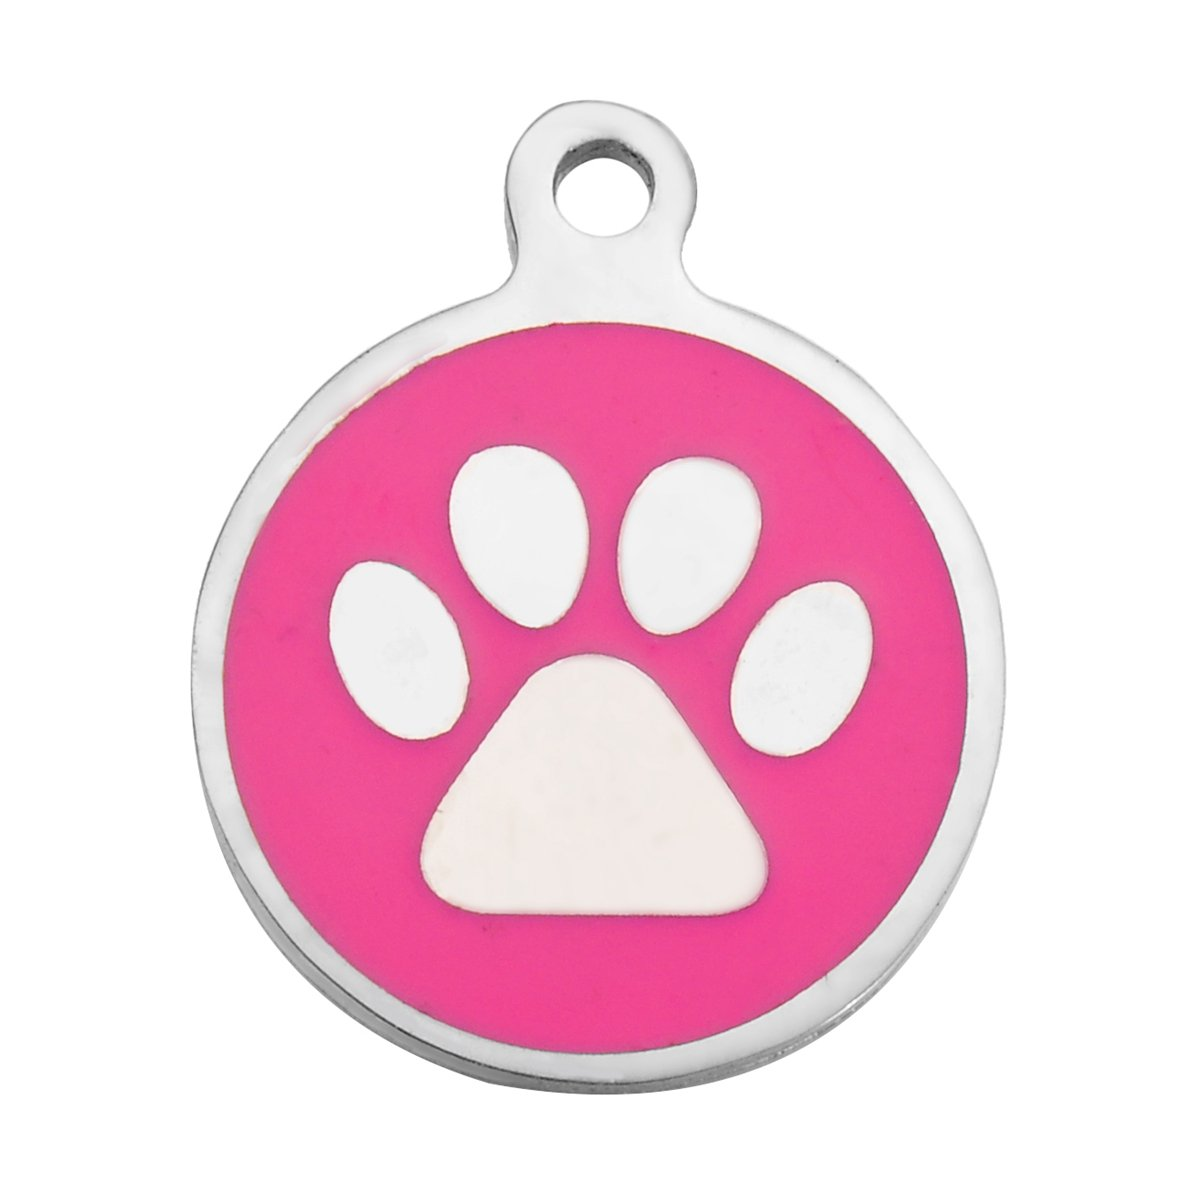 HooAMI Paw Print Round Stainless Steel with Enamel Pet ID Tag - Dog Tag Cat Tag